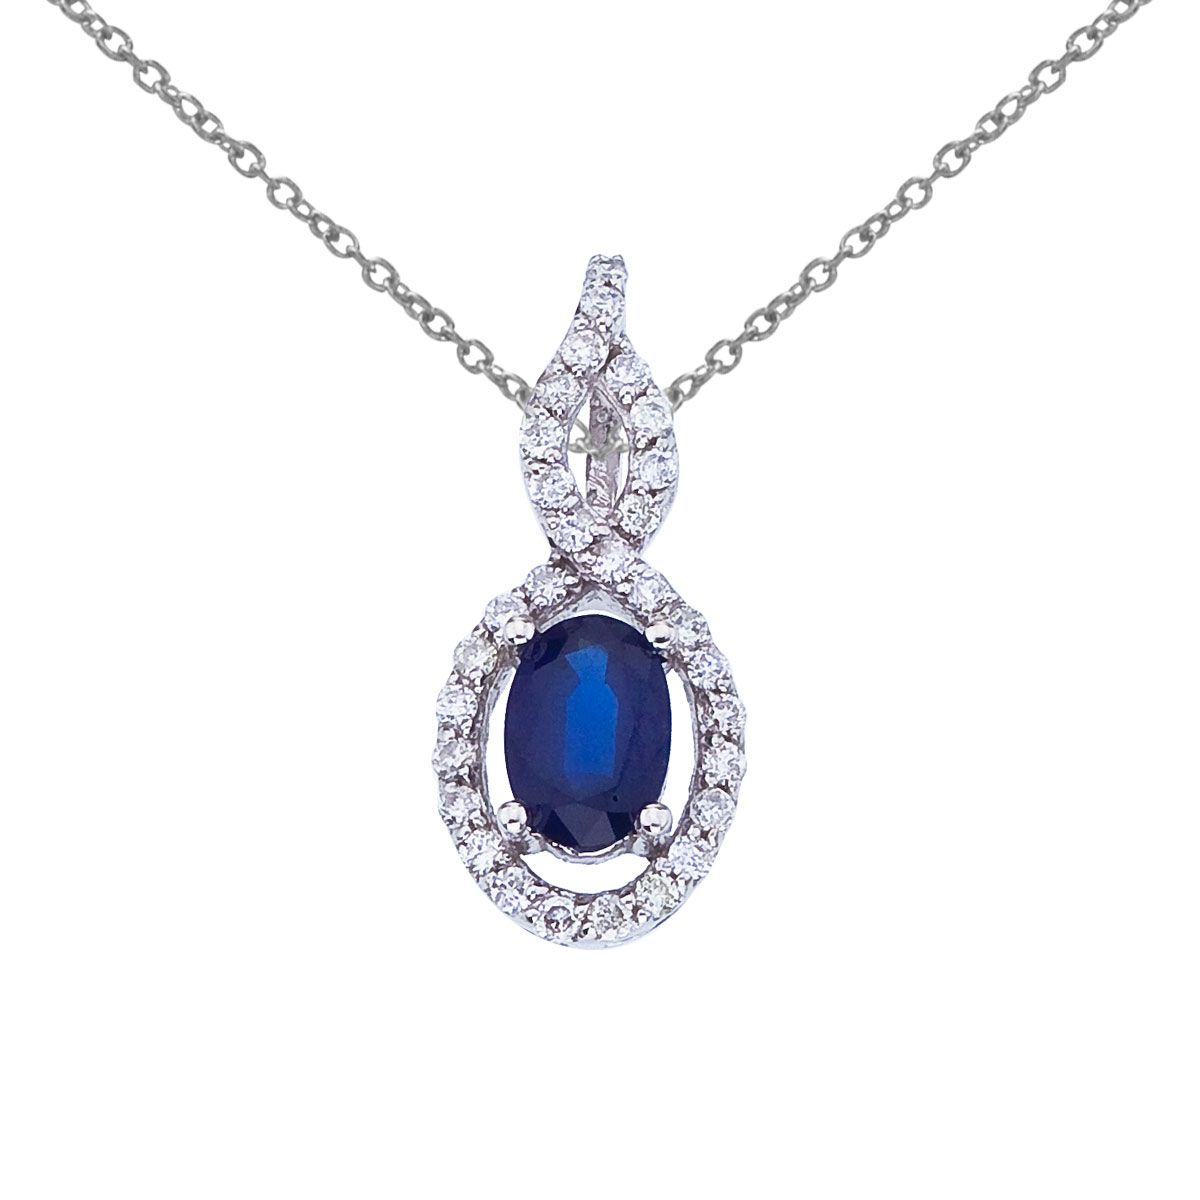 Luminous 6x4 mm sapphire pendant surrounded by .18 total ct diamonds set in 14k white gold.